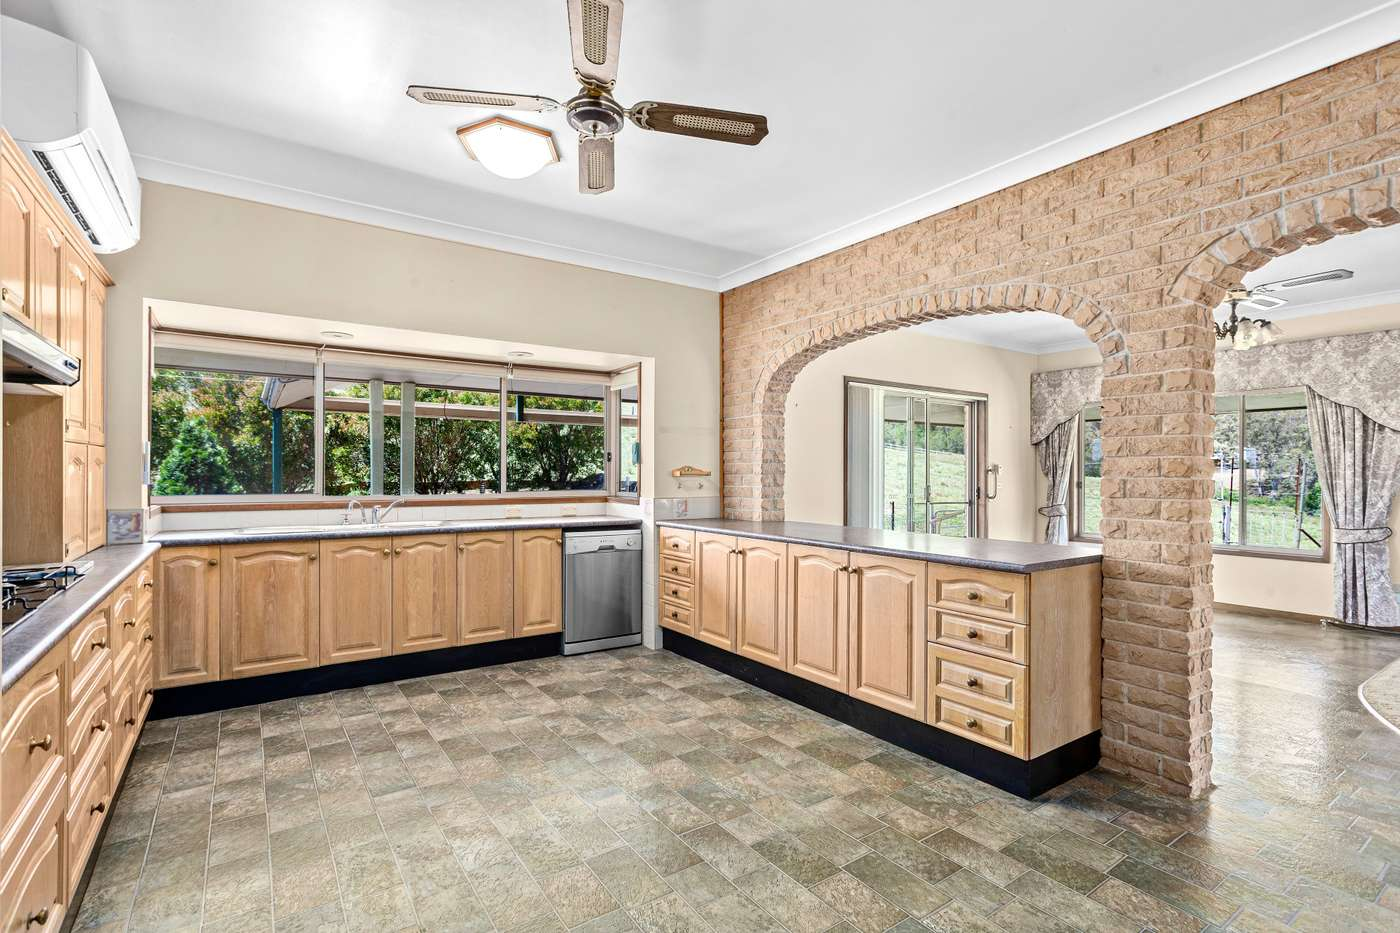 Main view of Homely house listing, 289 Yellow Rock Road, Yellow Rock, NSW 2527